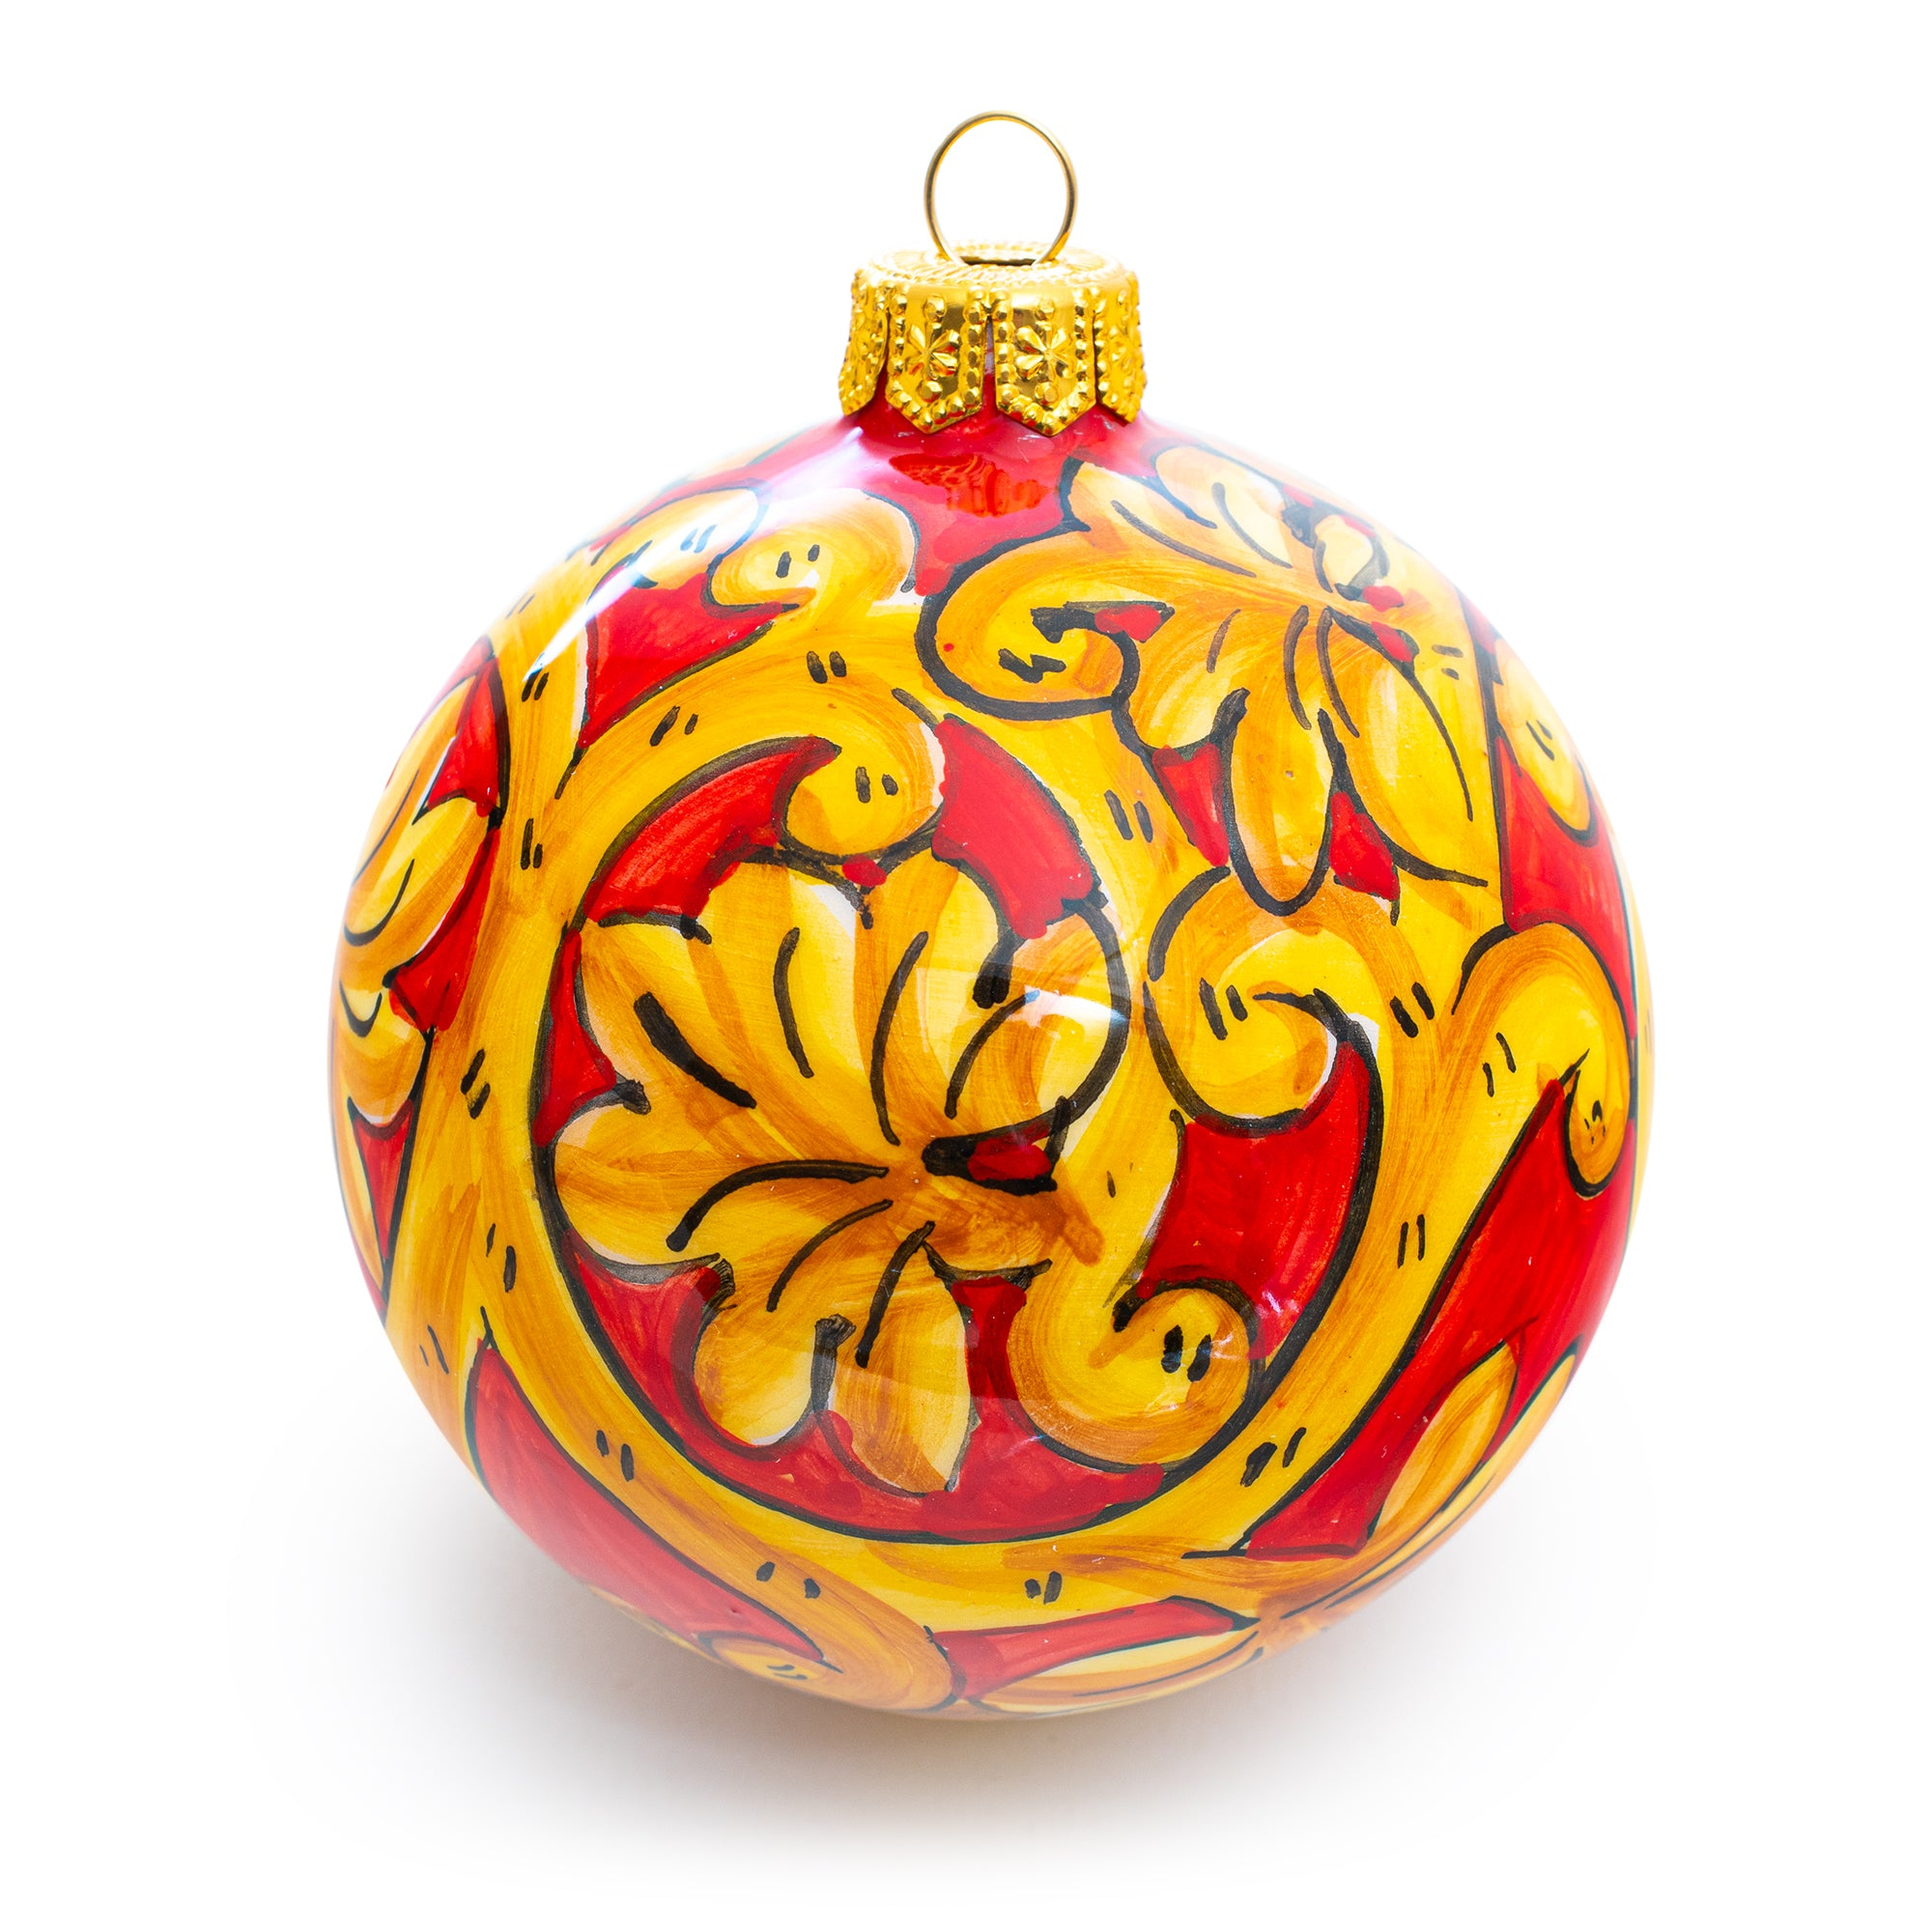 3181, Pia's Caltagirone Red Ornament, italian ceramics, pottery, made in italy, handcrafted, hand-made, hand-painted